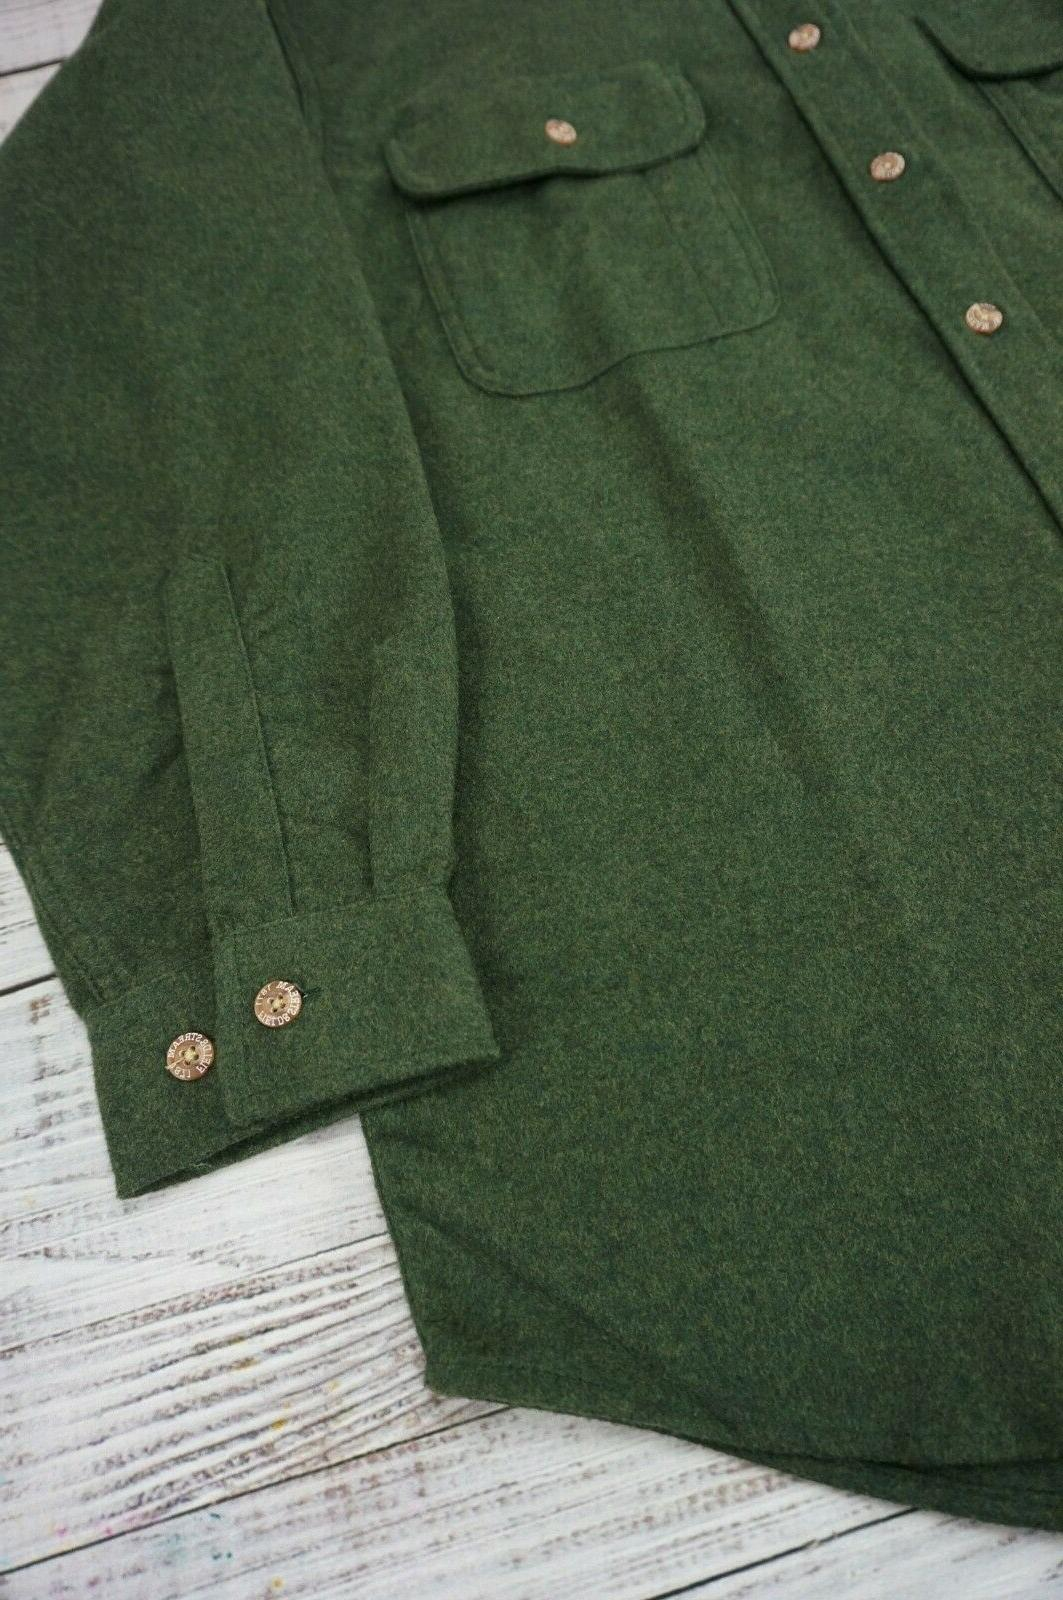 Field Stream Shirt Jacket Loden Forest Green - Medium NWOT